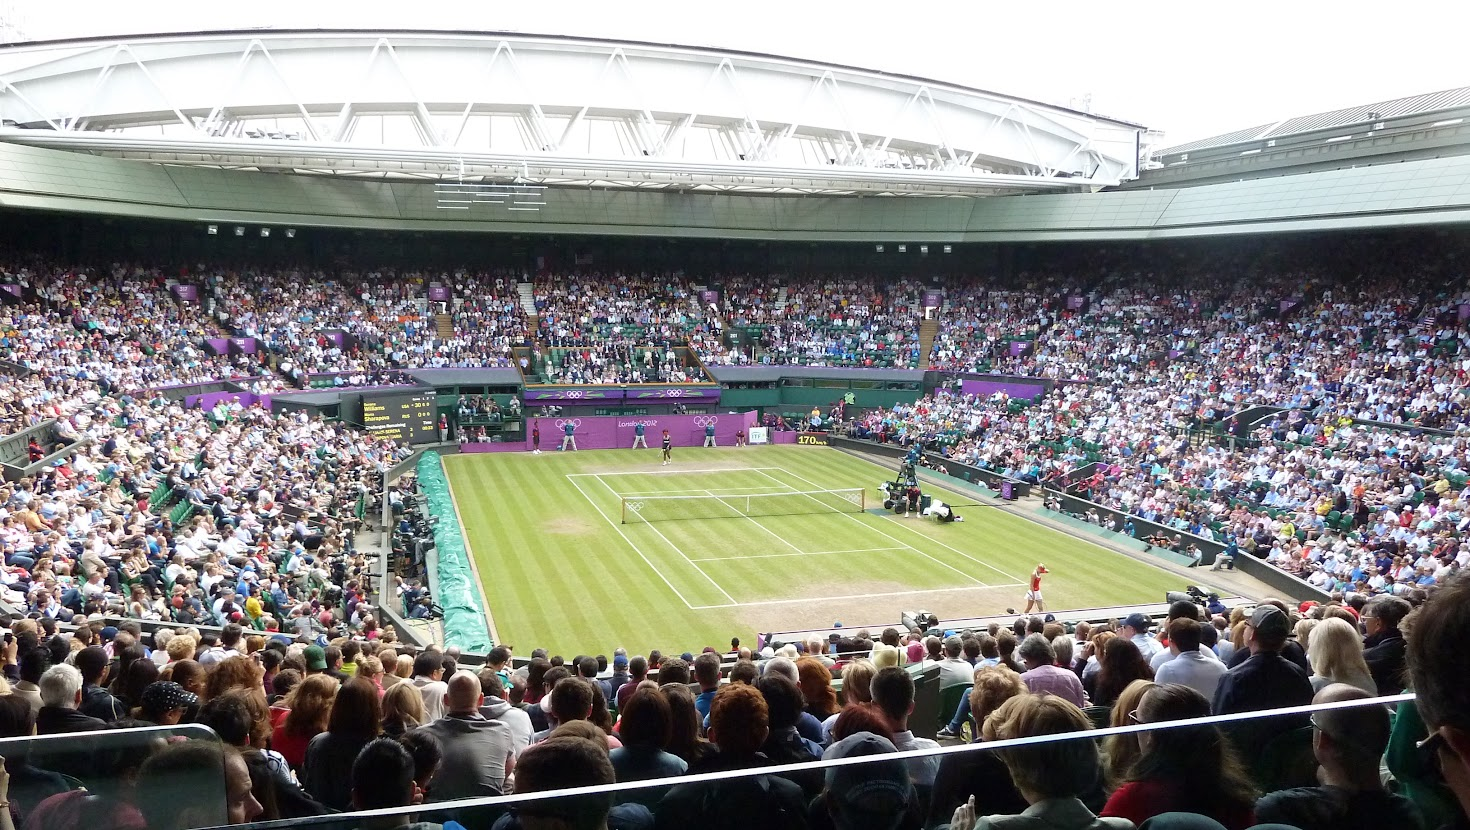 Olympic women tennis final at Wimbledon, London, 2012